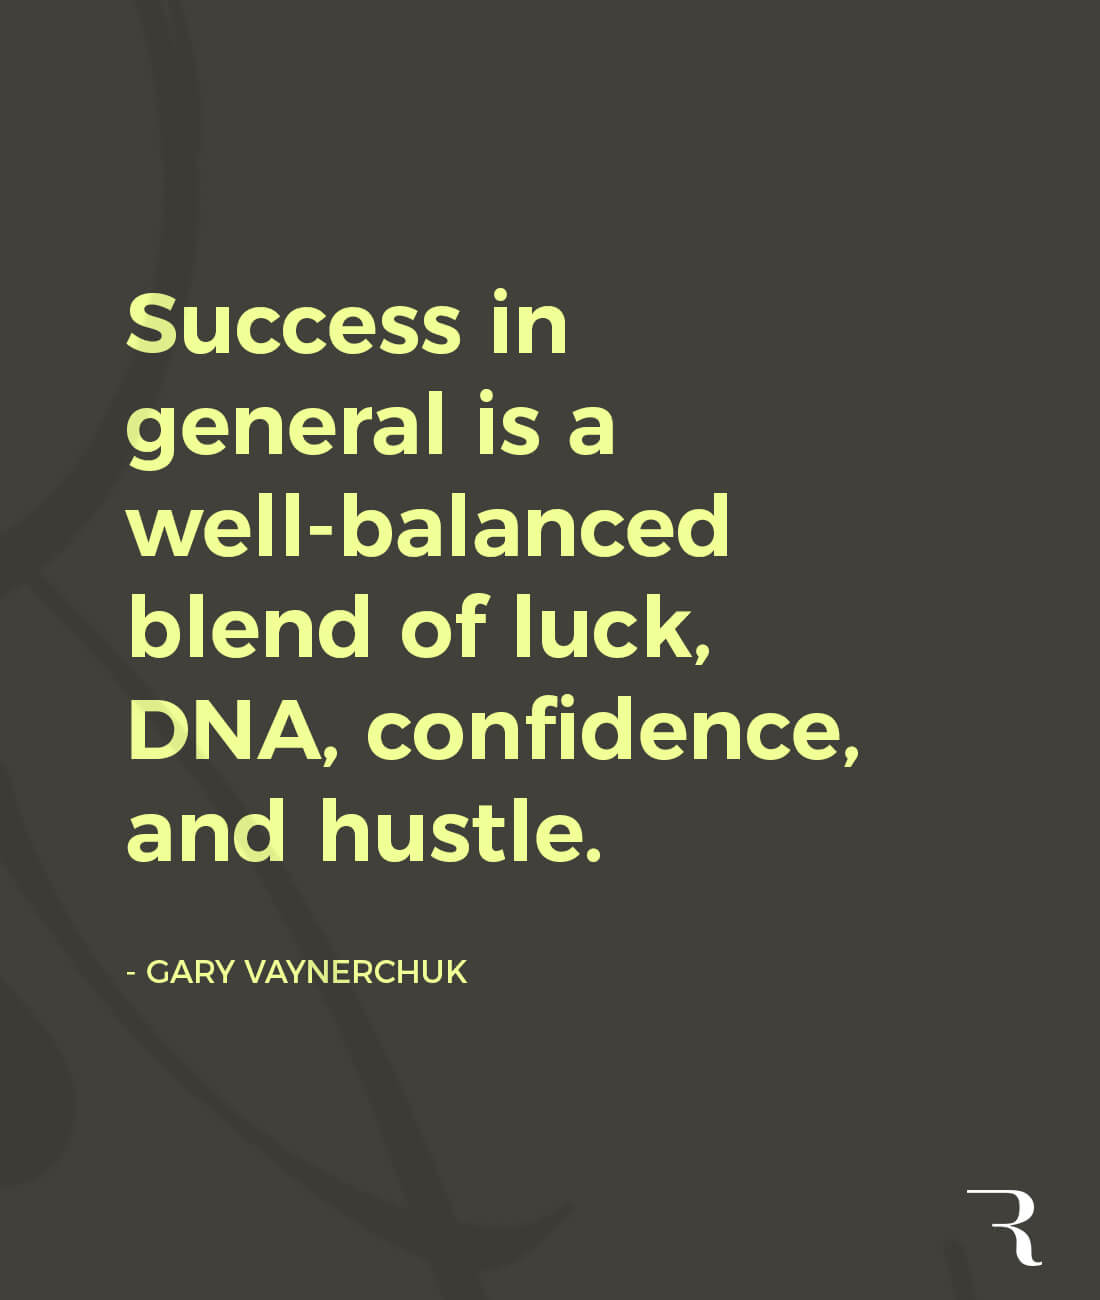 """Motivational Quotes: """"Success is a blend of luck, DNA, confidence, and hustle."""" 112 Motivational Quotes to Be a Better Entrepreneur"""